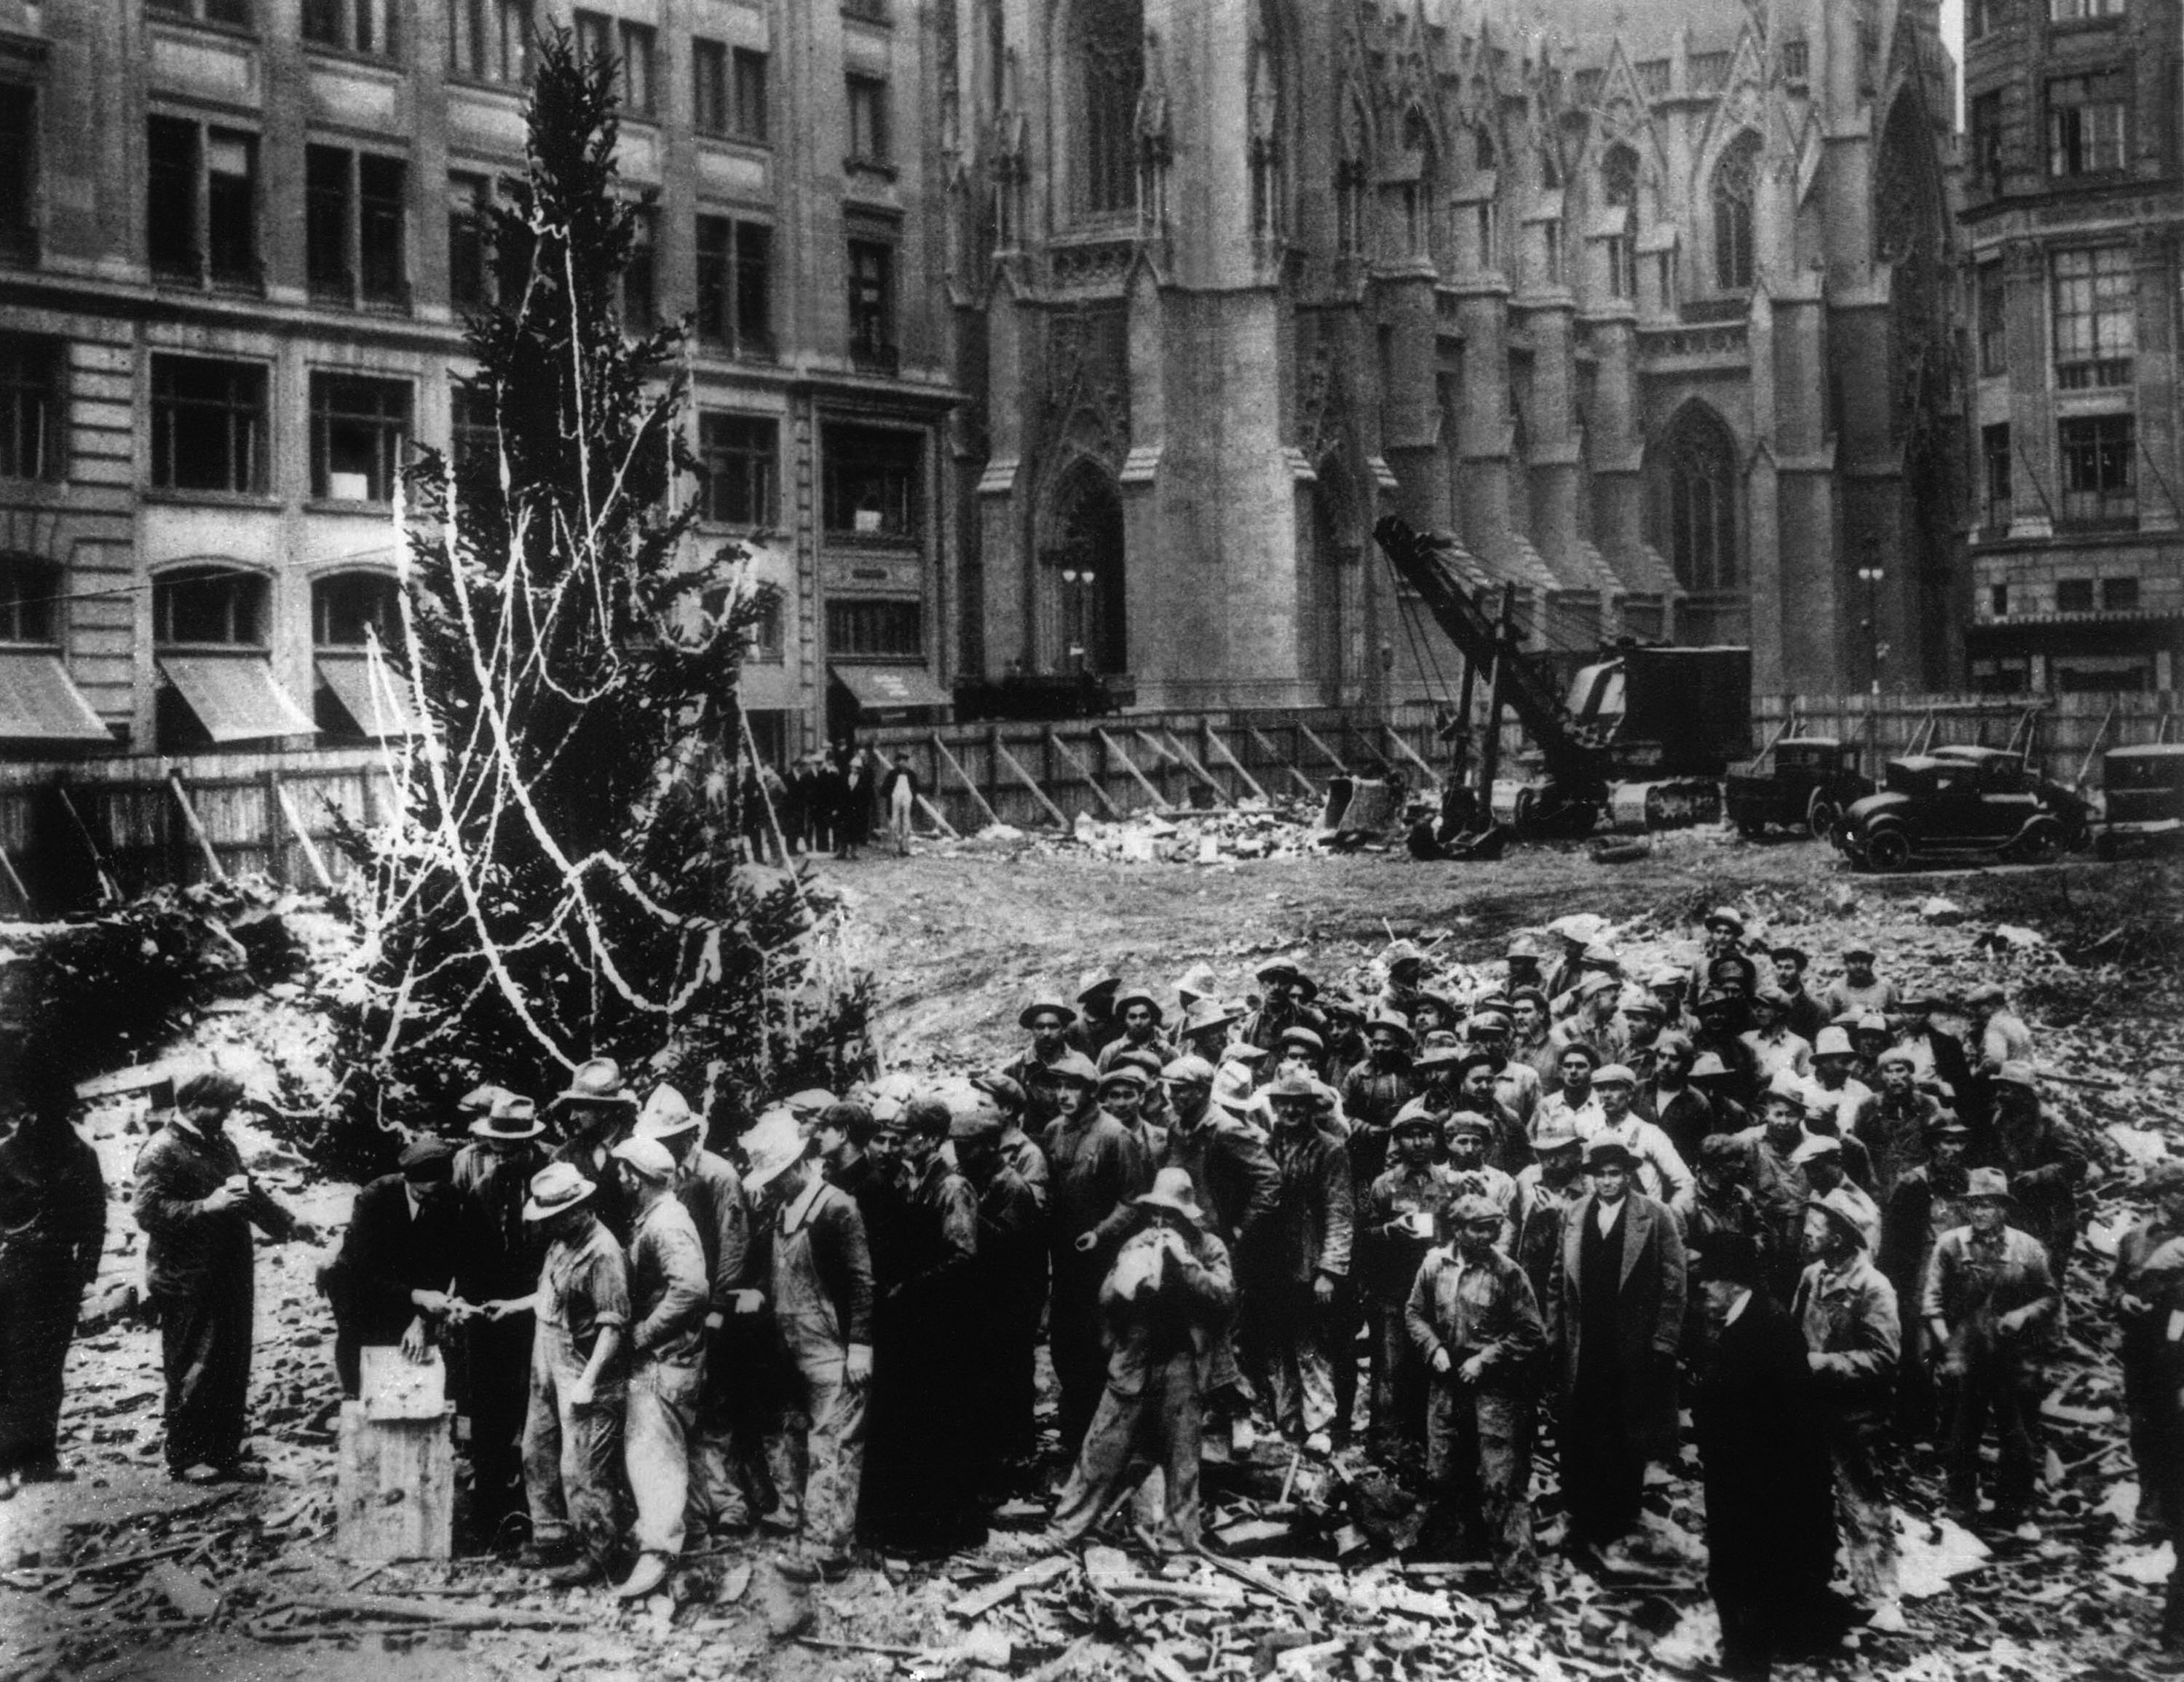 On Christmas Eve 1931, a group of construction workers erected a 20-ft. tree on the muddy site of what would become one of the city's greatest architectural and commercial monuments.Two years later, a Rockefeller Center publicist organized the first official tree-lighting ceremony.